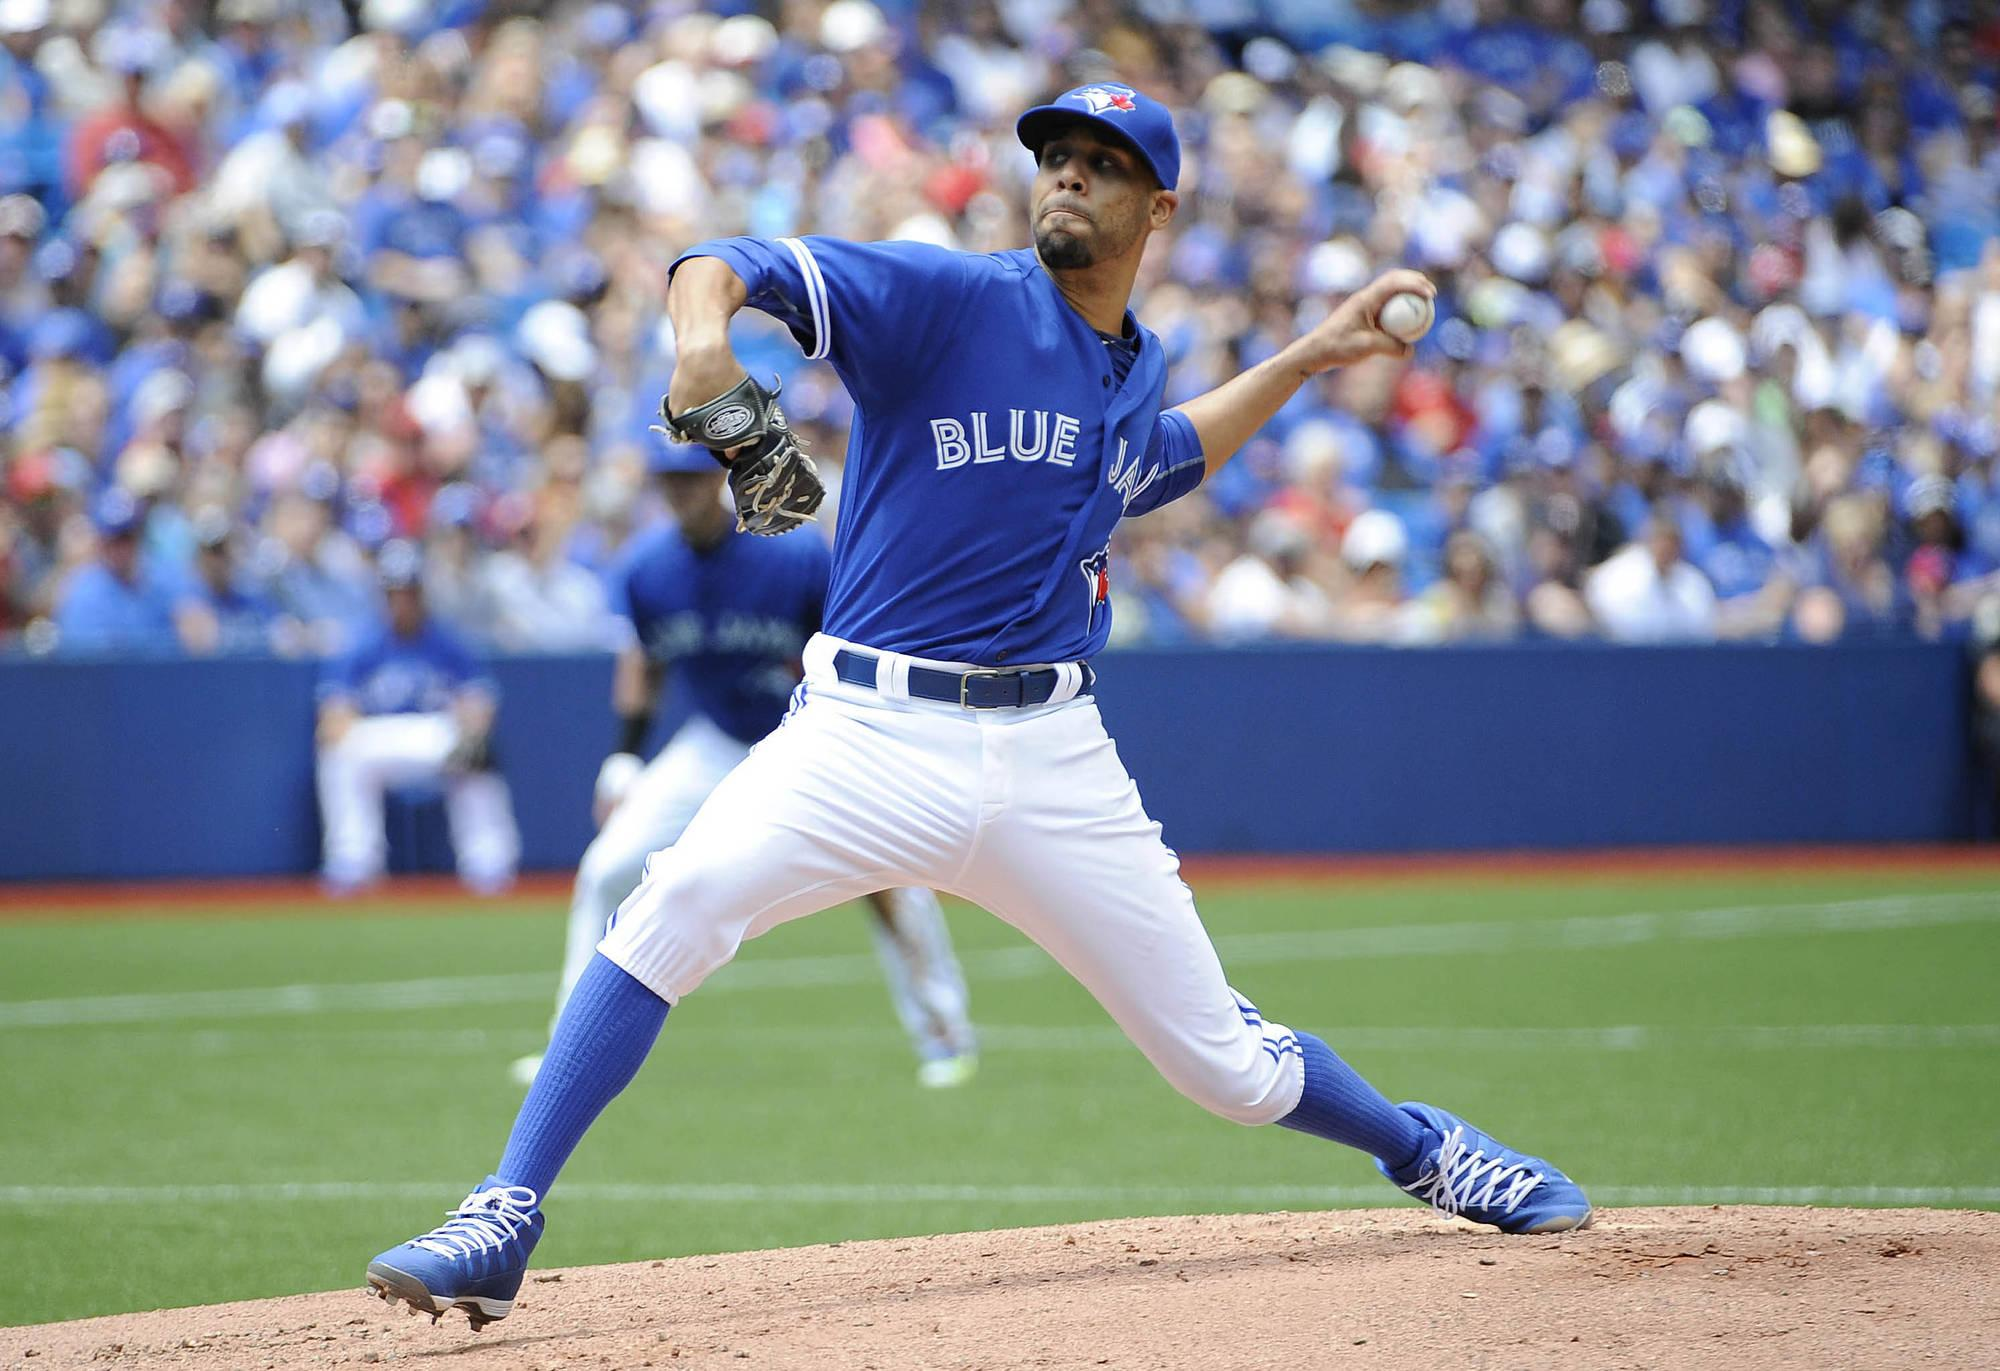 Free agent David Price finished the 2015 season with a record of 18-5 and a 2.45 ERA. (courtesy of inningseaters.sportsblog.com)